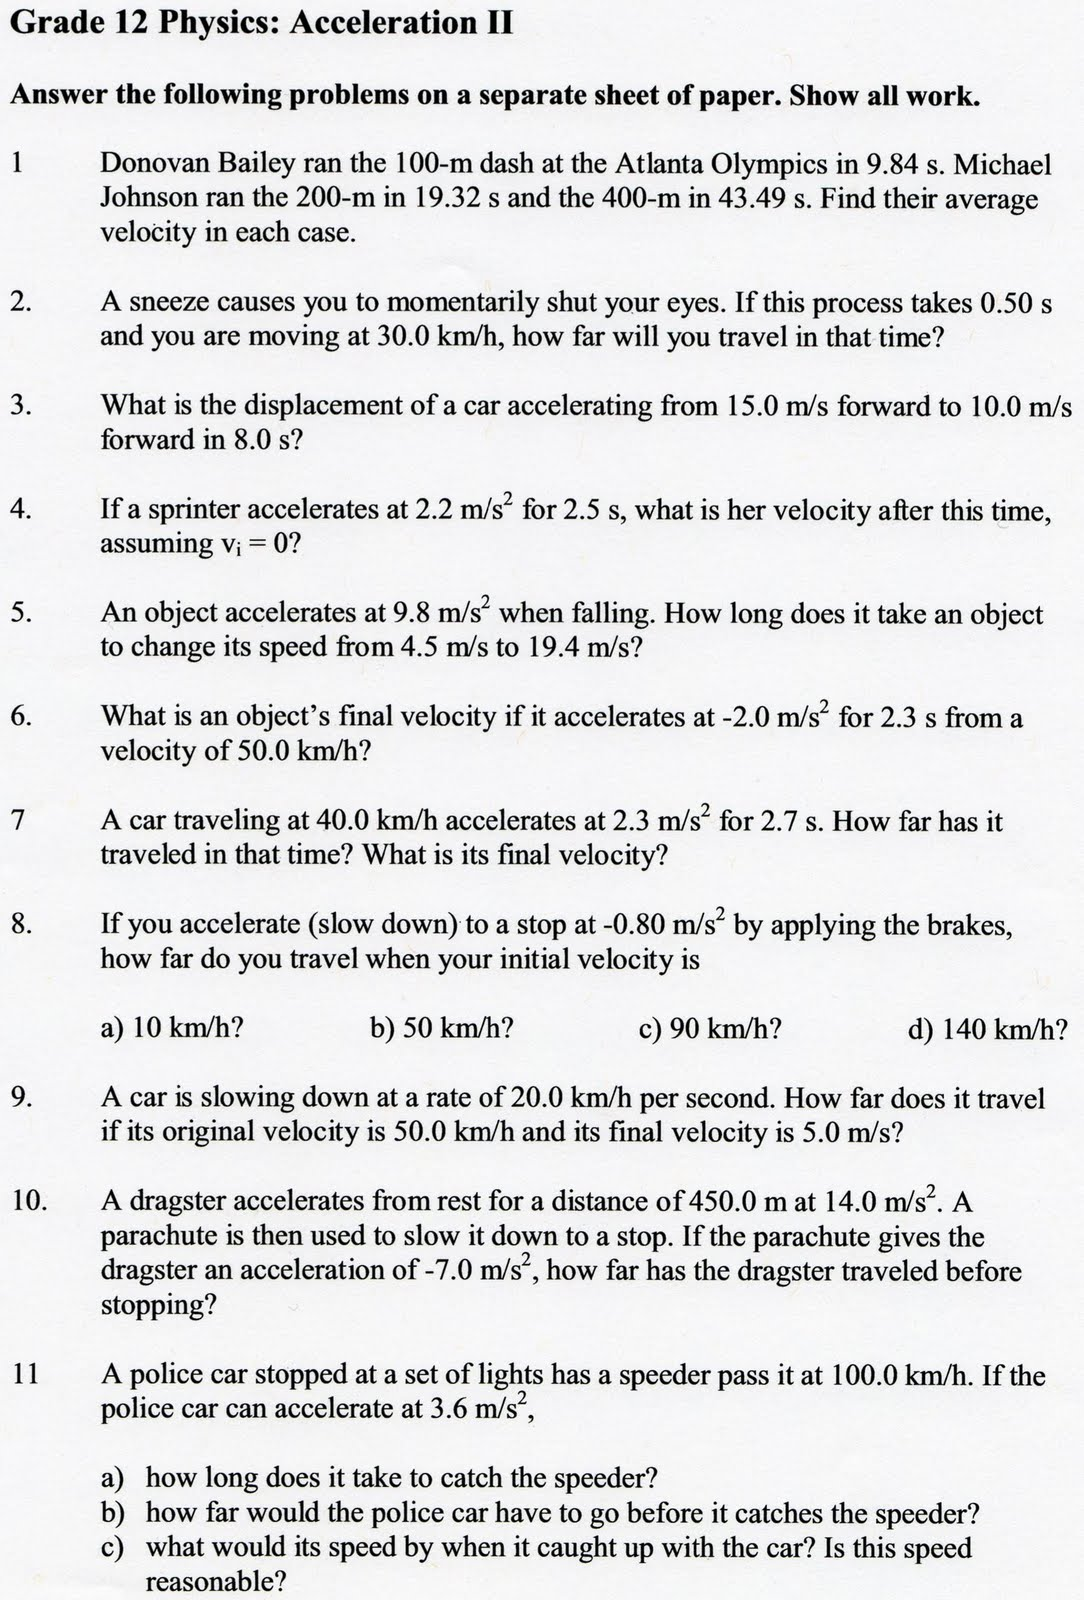 Velocity And Acceleration Calculation Worksheet Answers